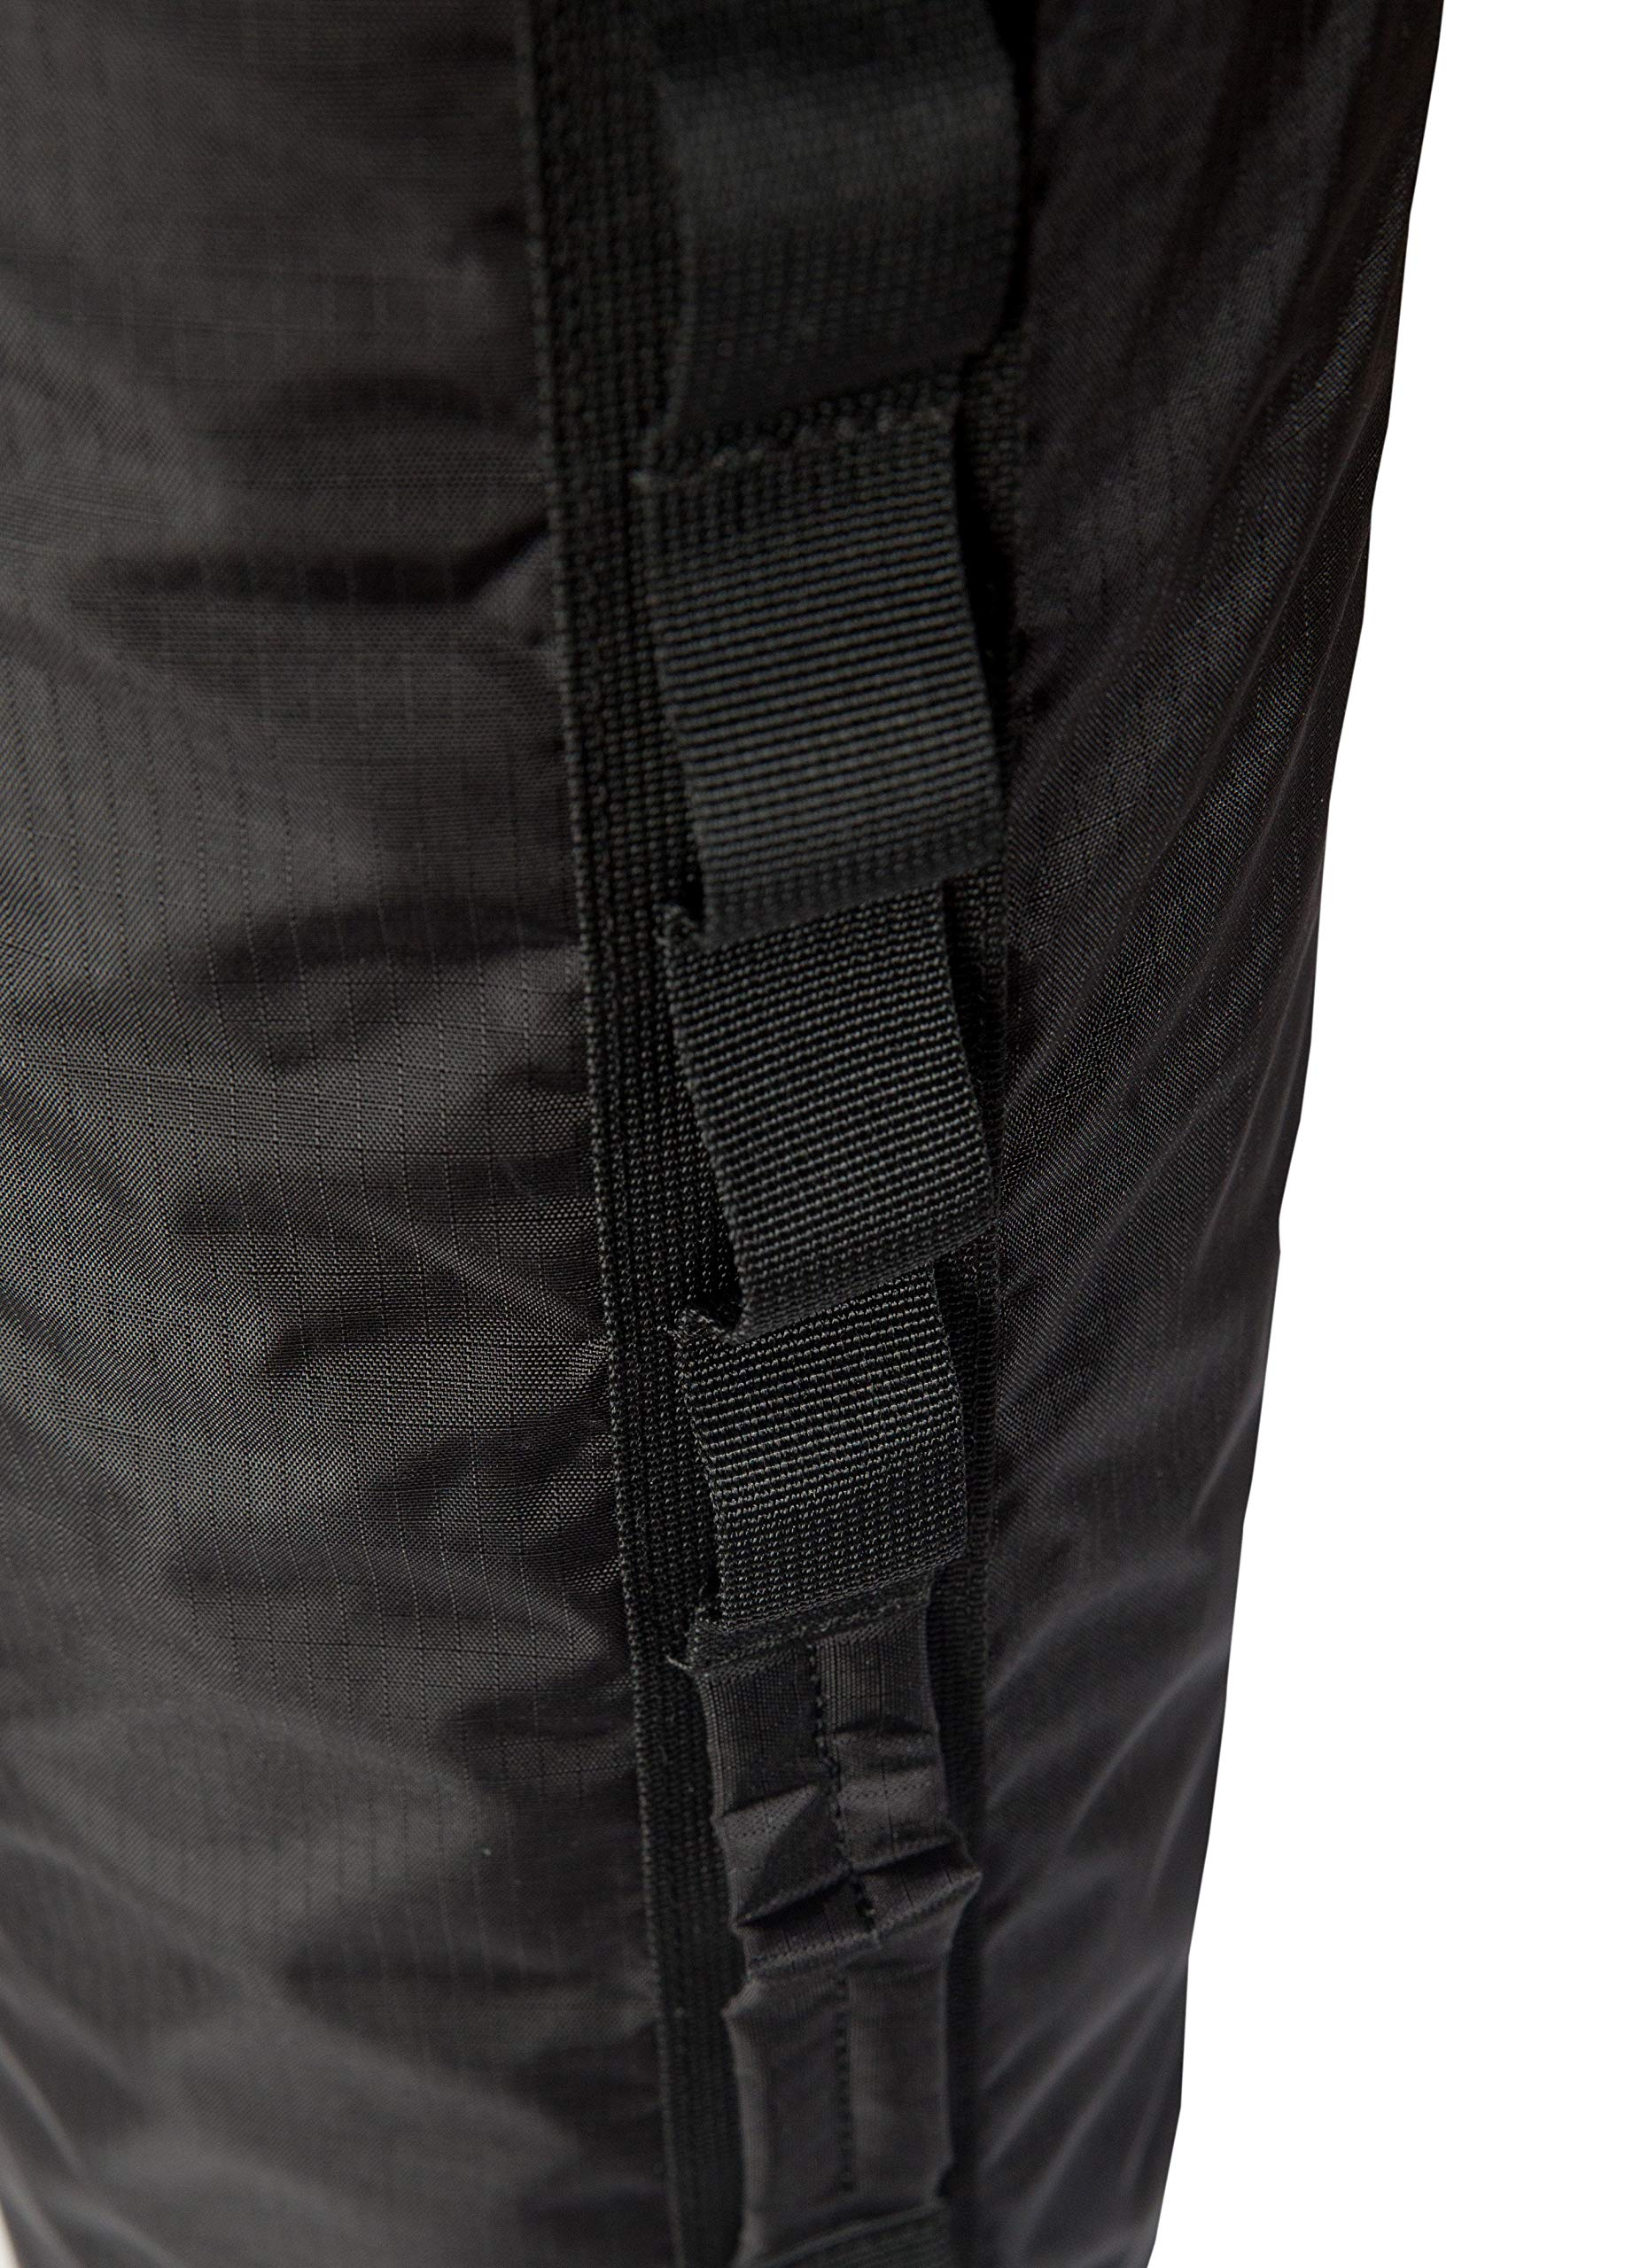 f-stop - Medium Tripod Bag, Fits up to 35'' by f-stop (Image #4)